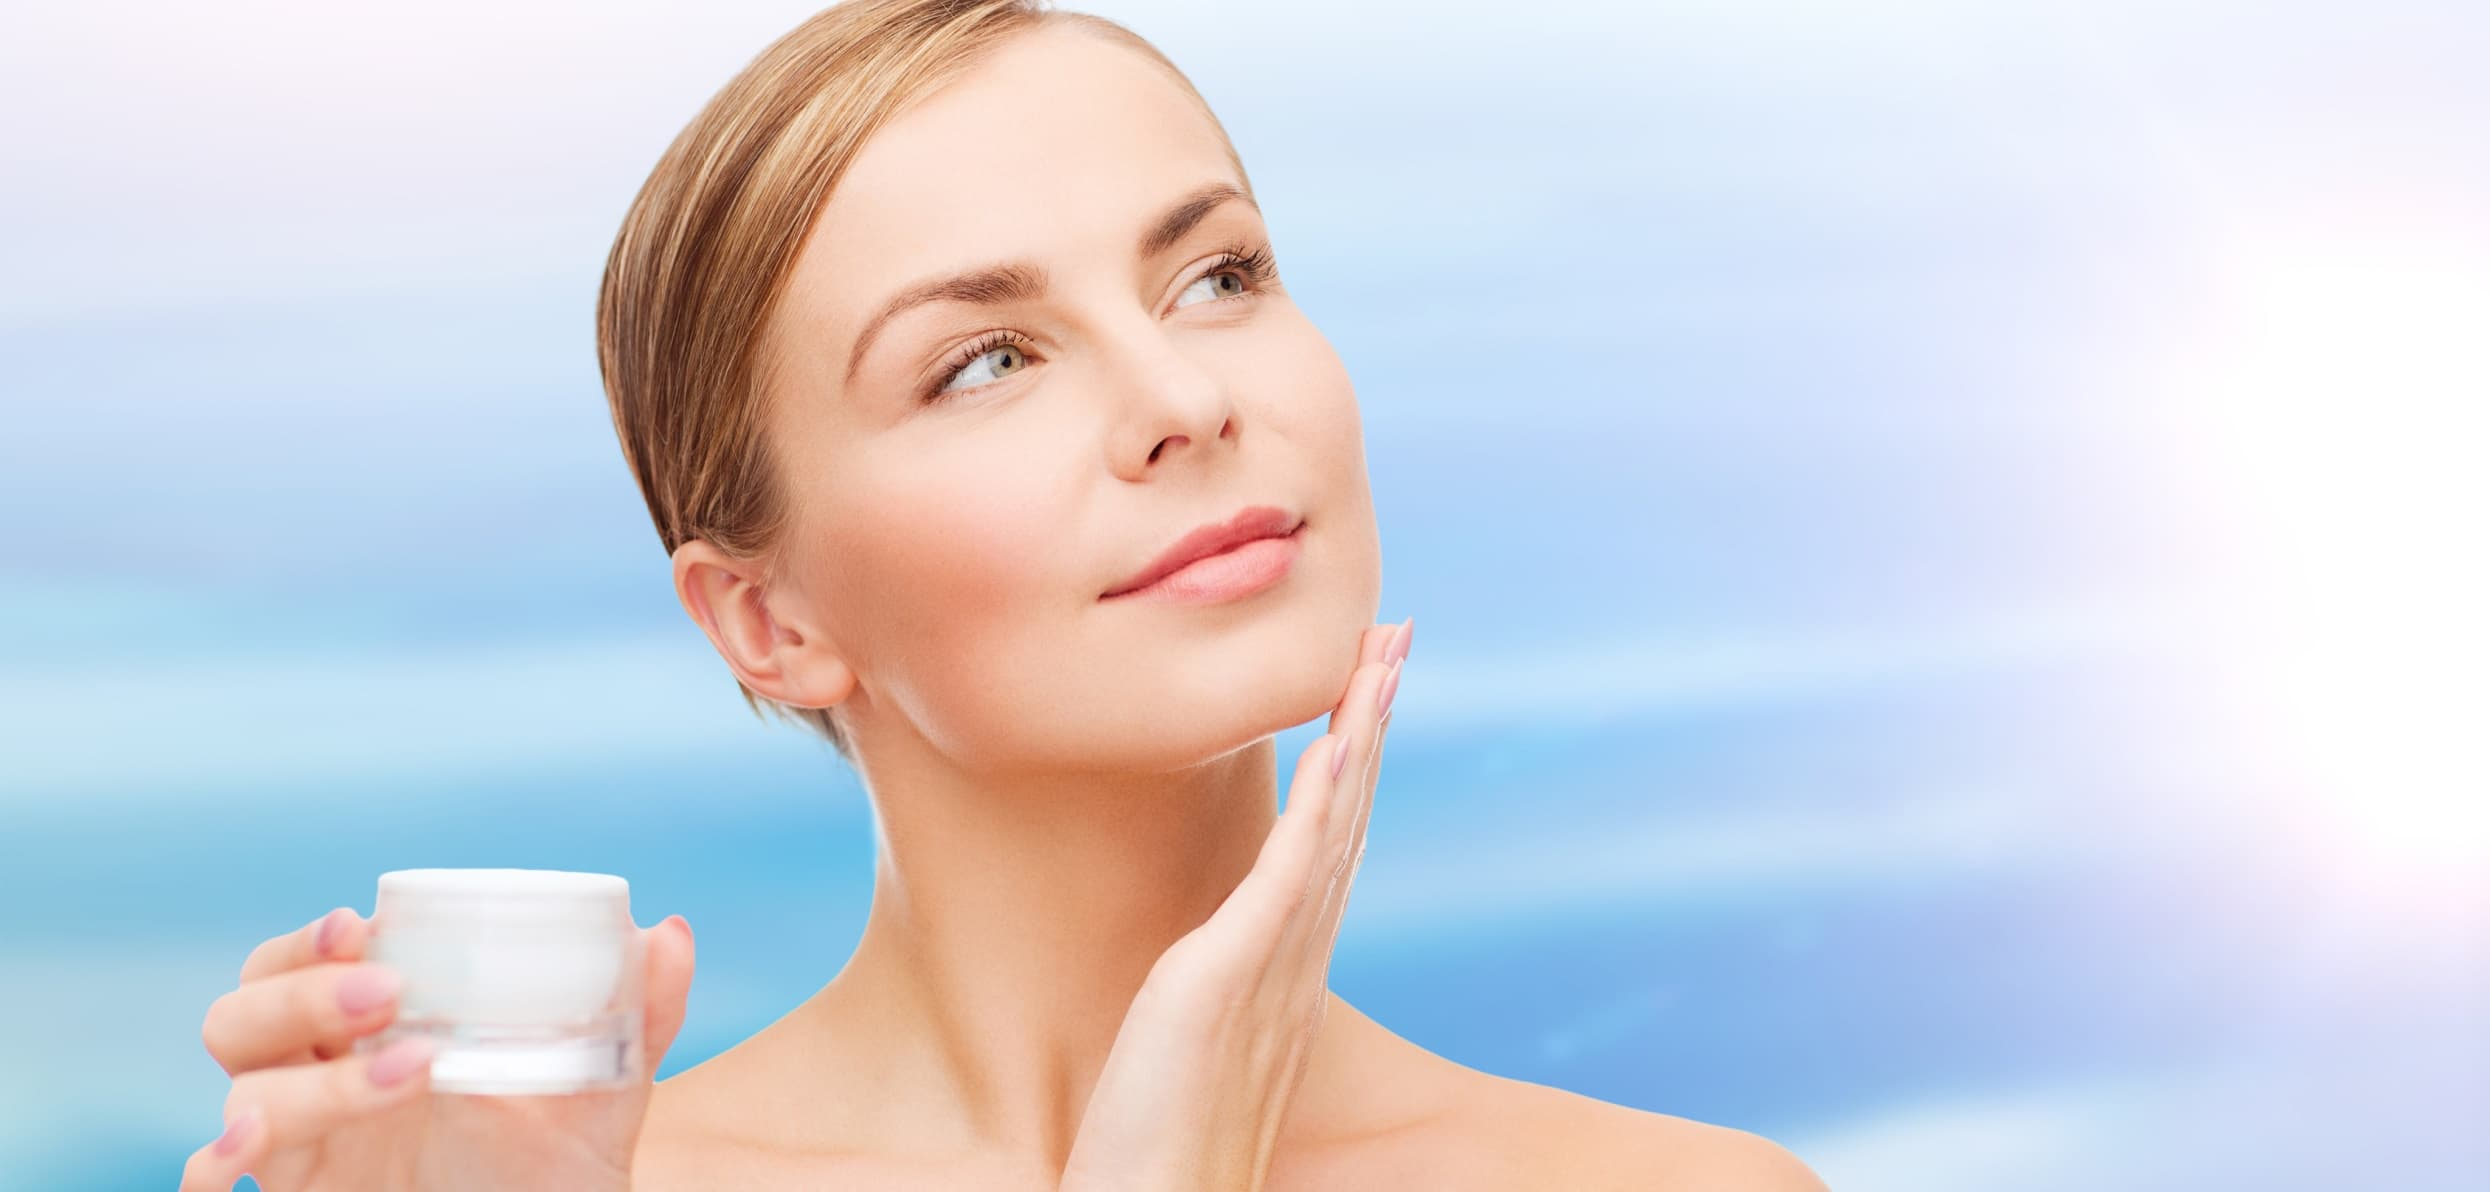 A woman gracefully touching her face - skincare routine with tretinoin